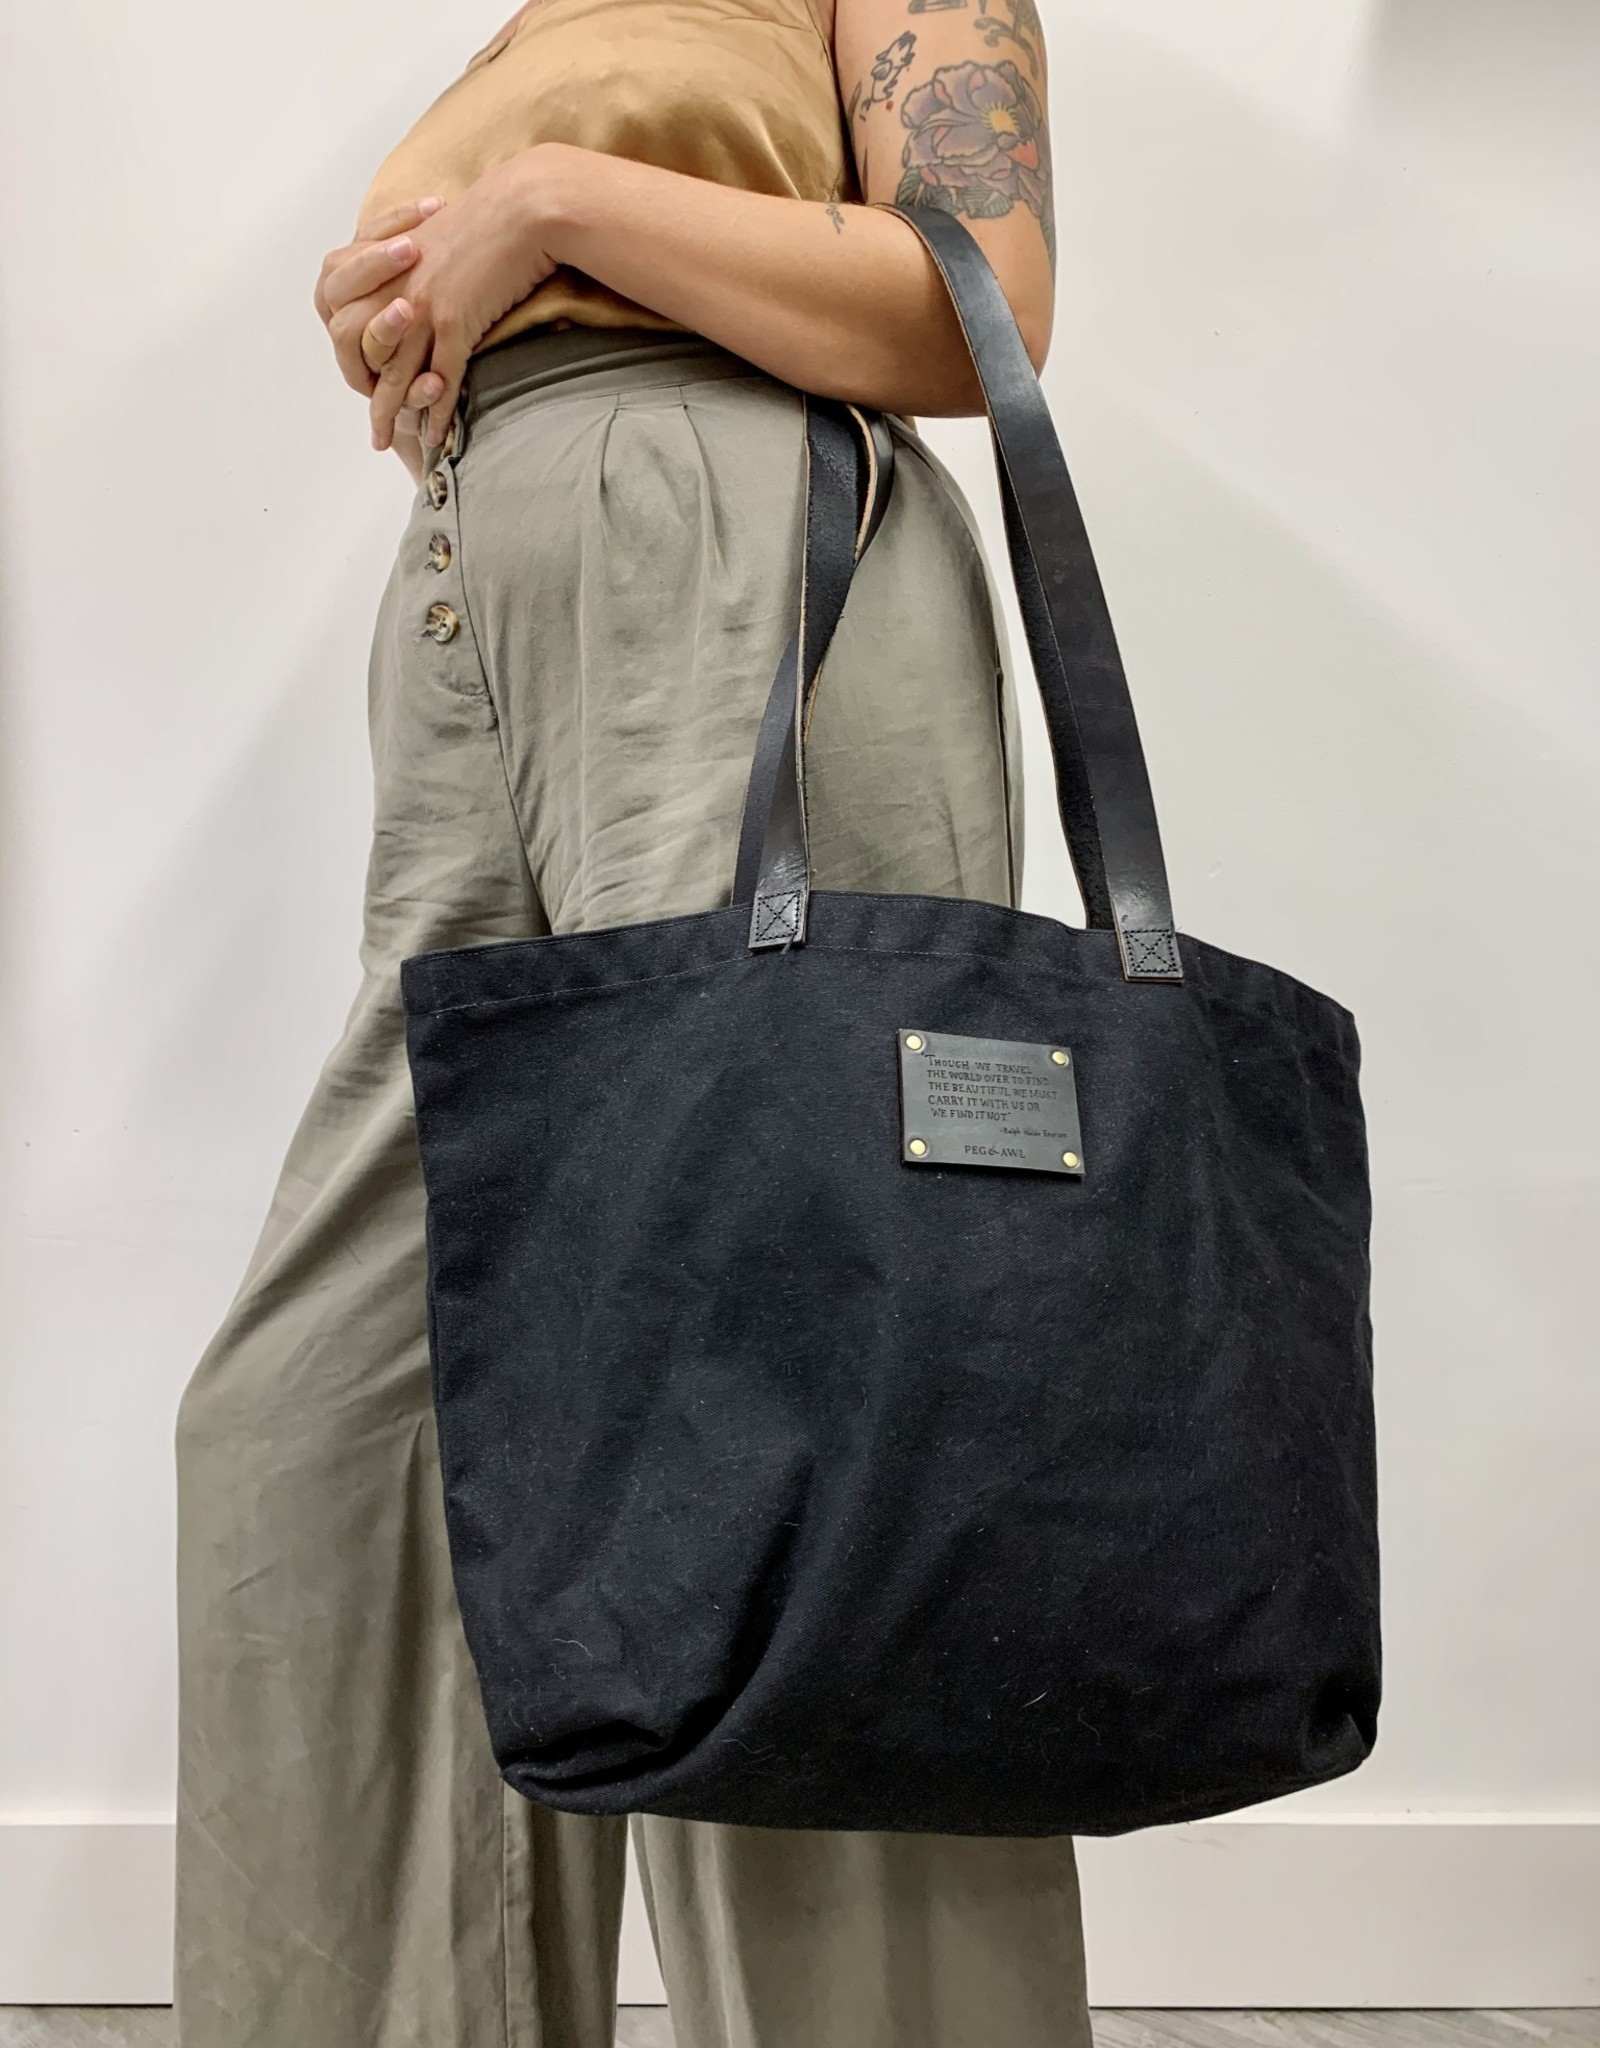 Peg&Awl Seaside Waxed Canvas Tote. Coal with Black Leather Straps and Emerson Quote